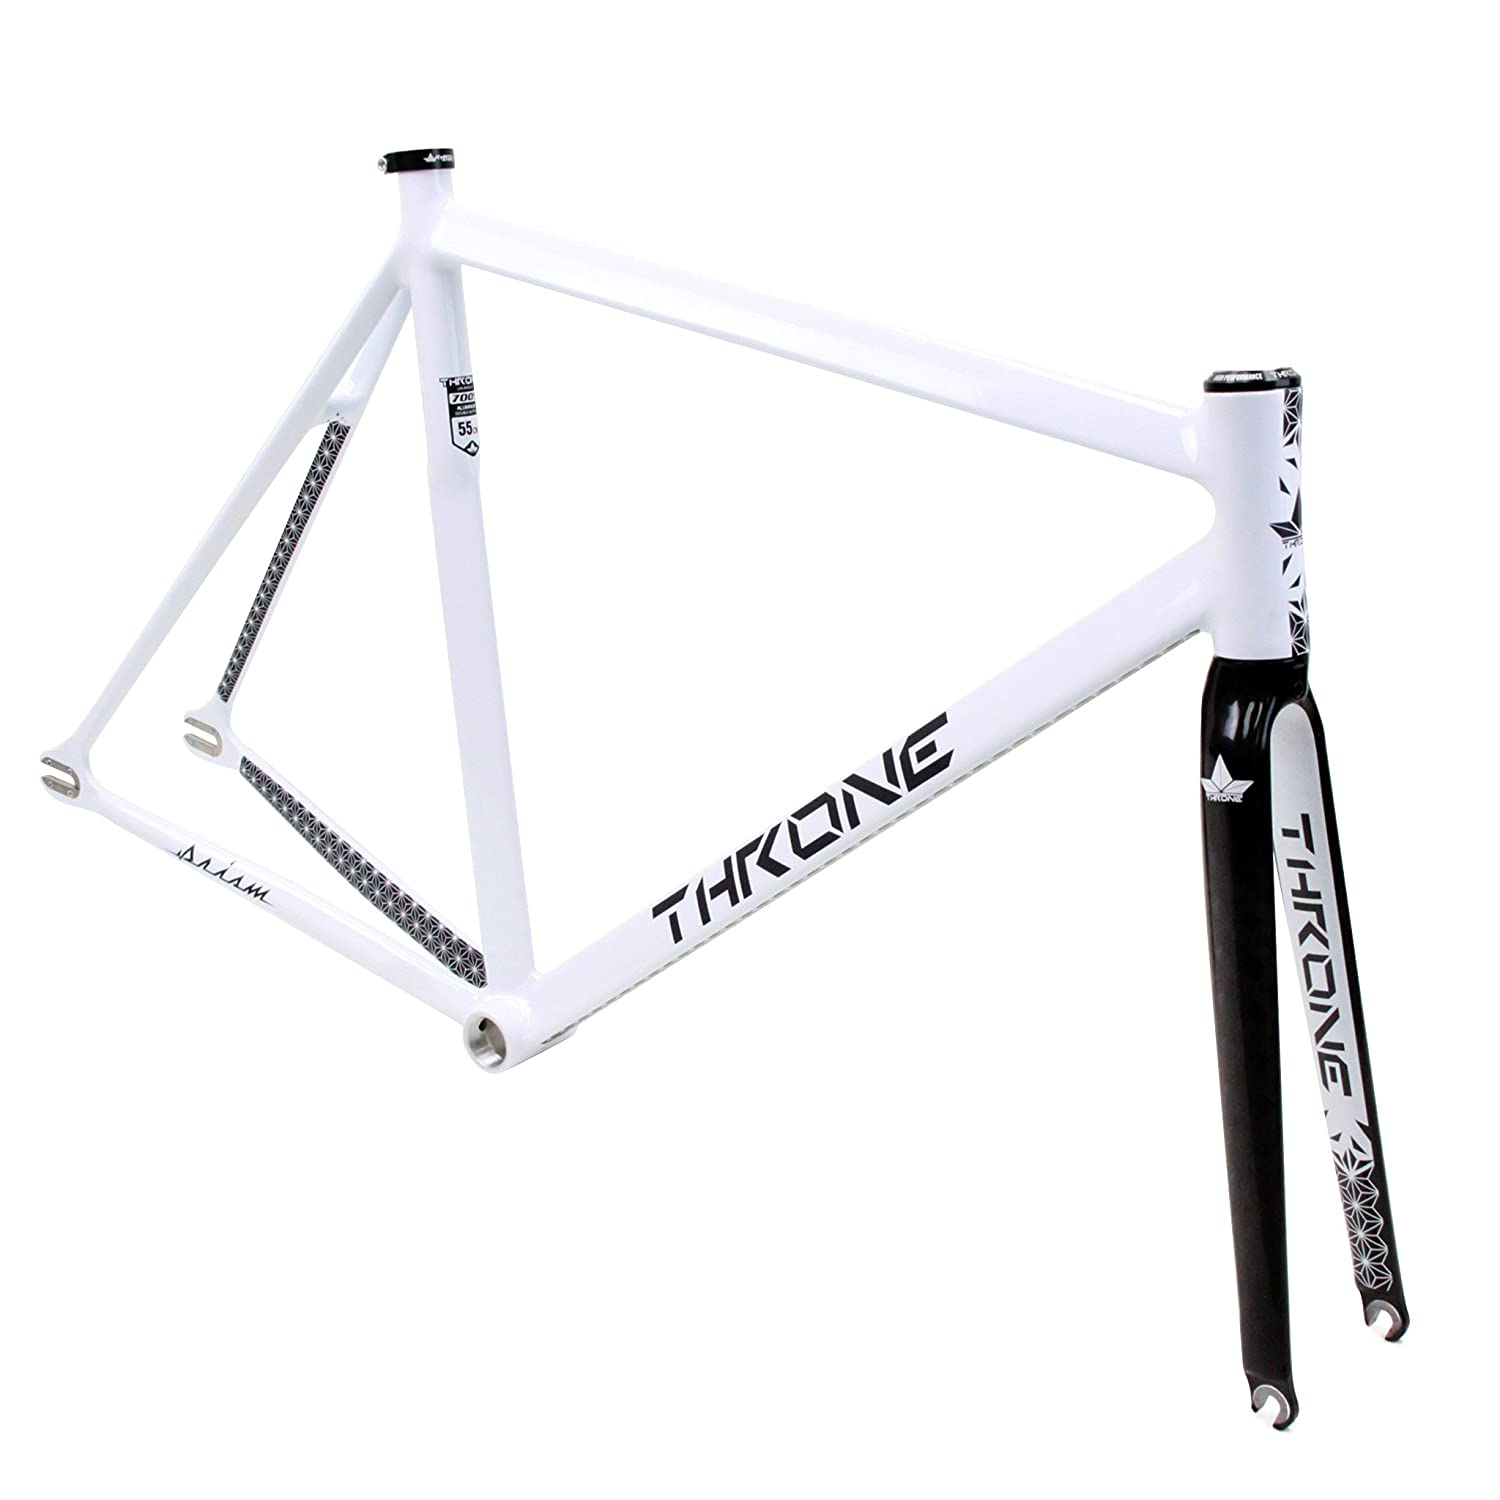 Amazon.com : Throne Prism Aluminum Track Frame- White/Black Includes ...